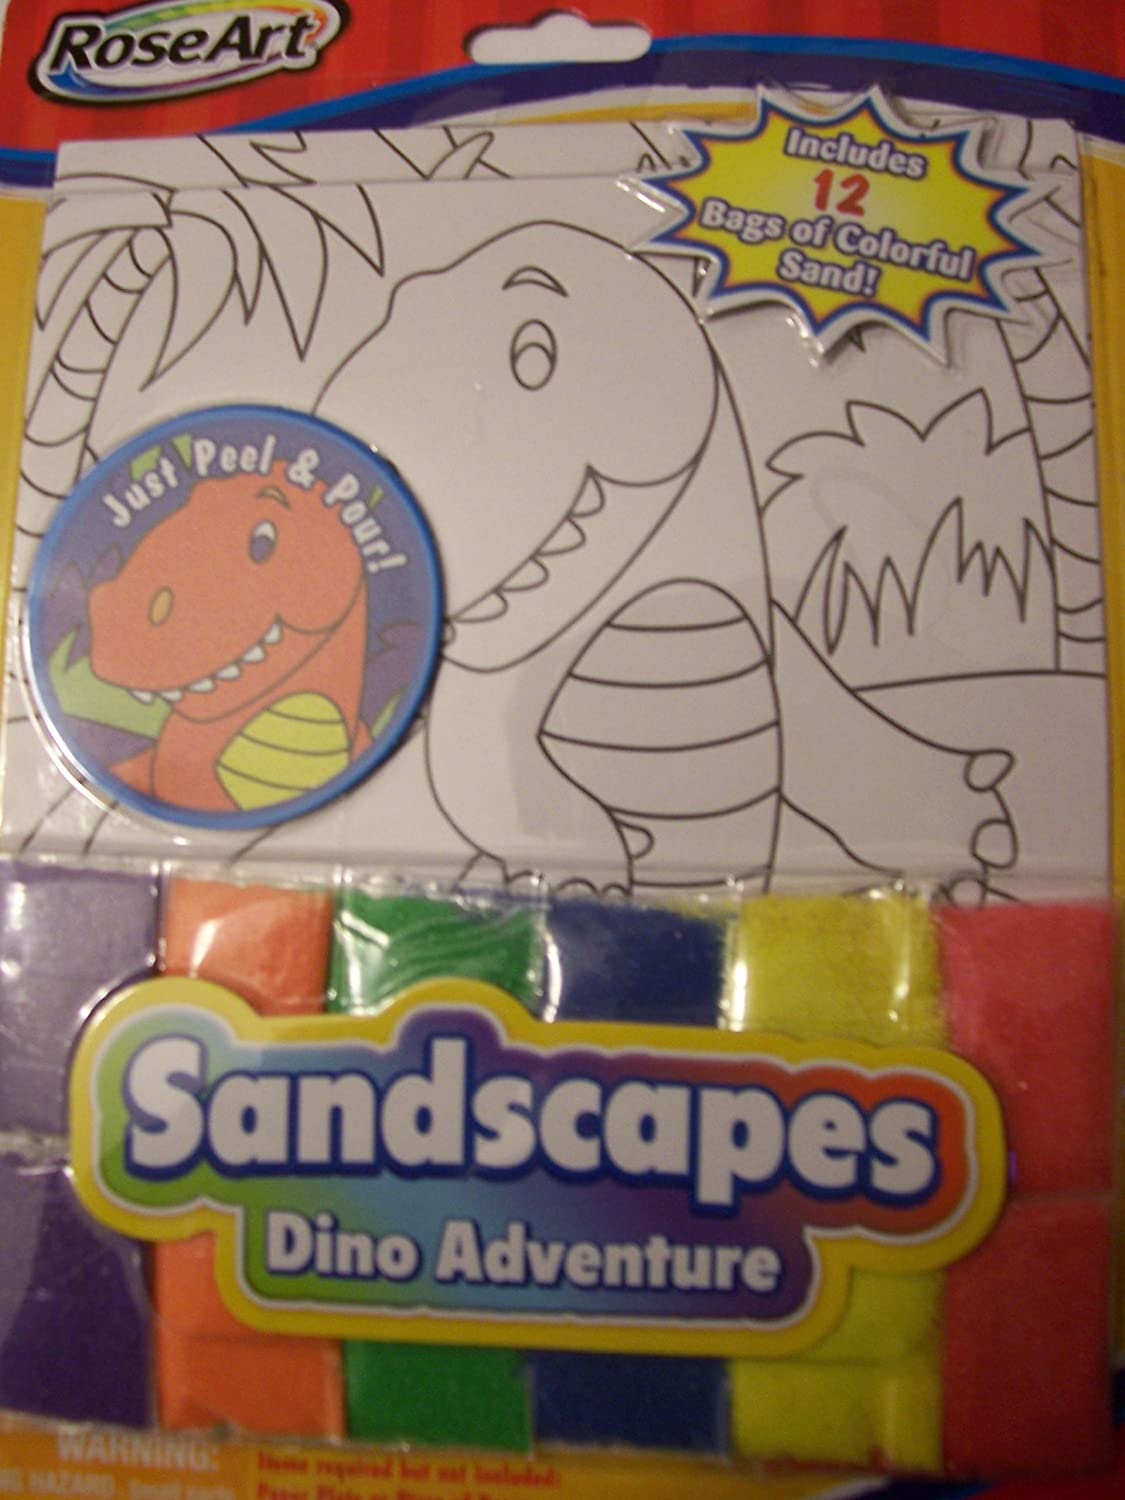 pinkArt Sandscapes  Dino Adventure